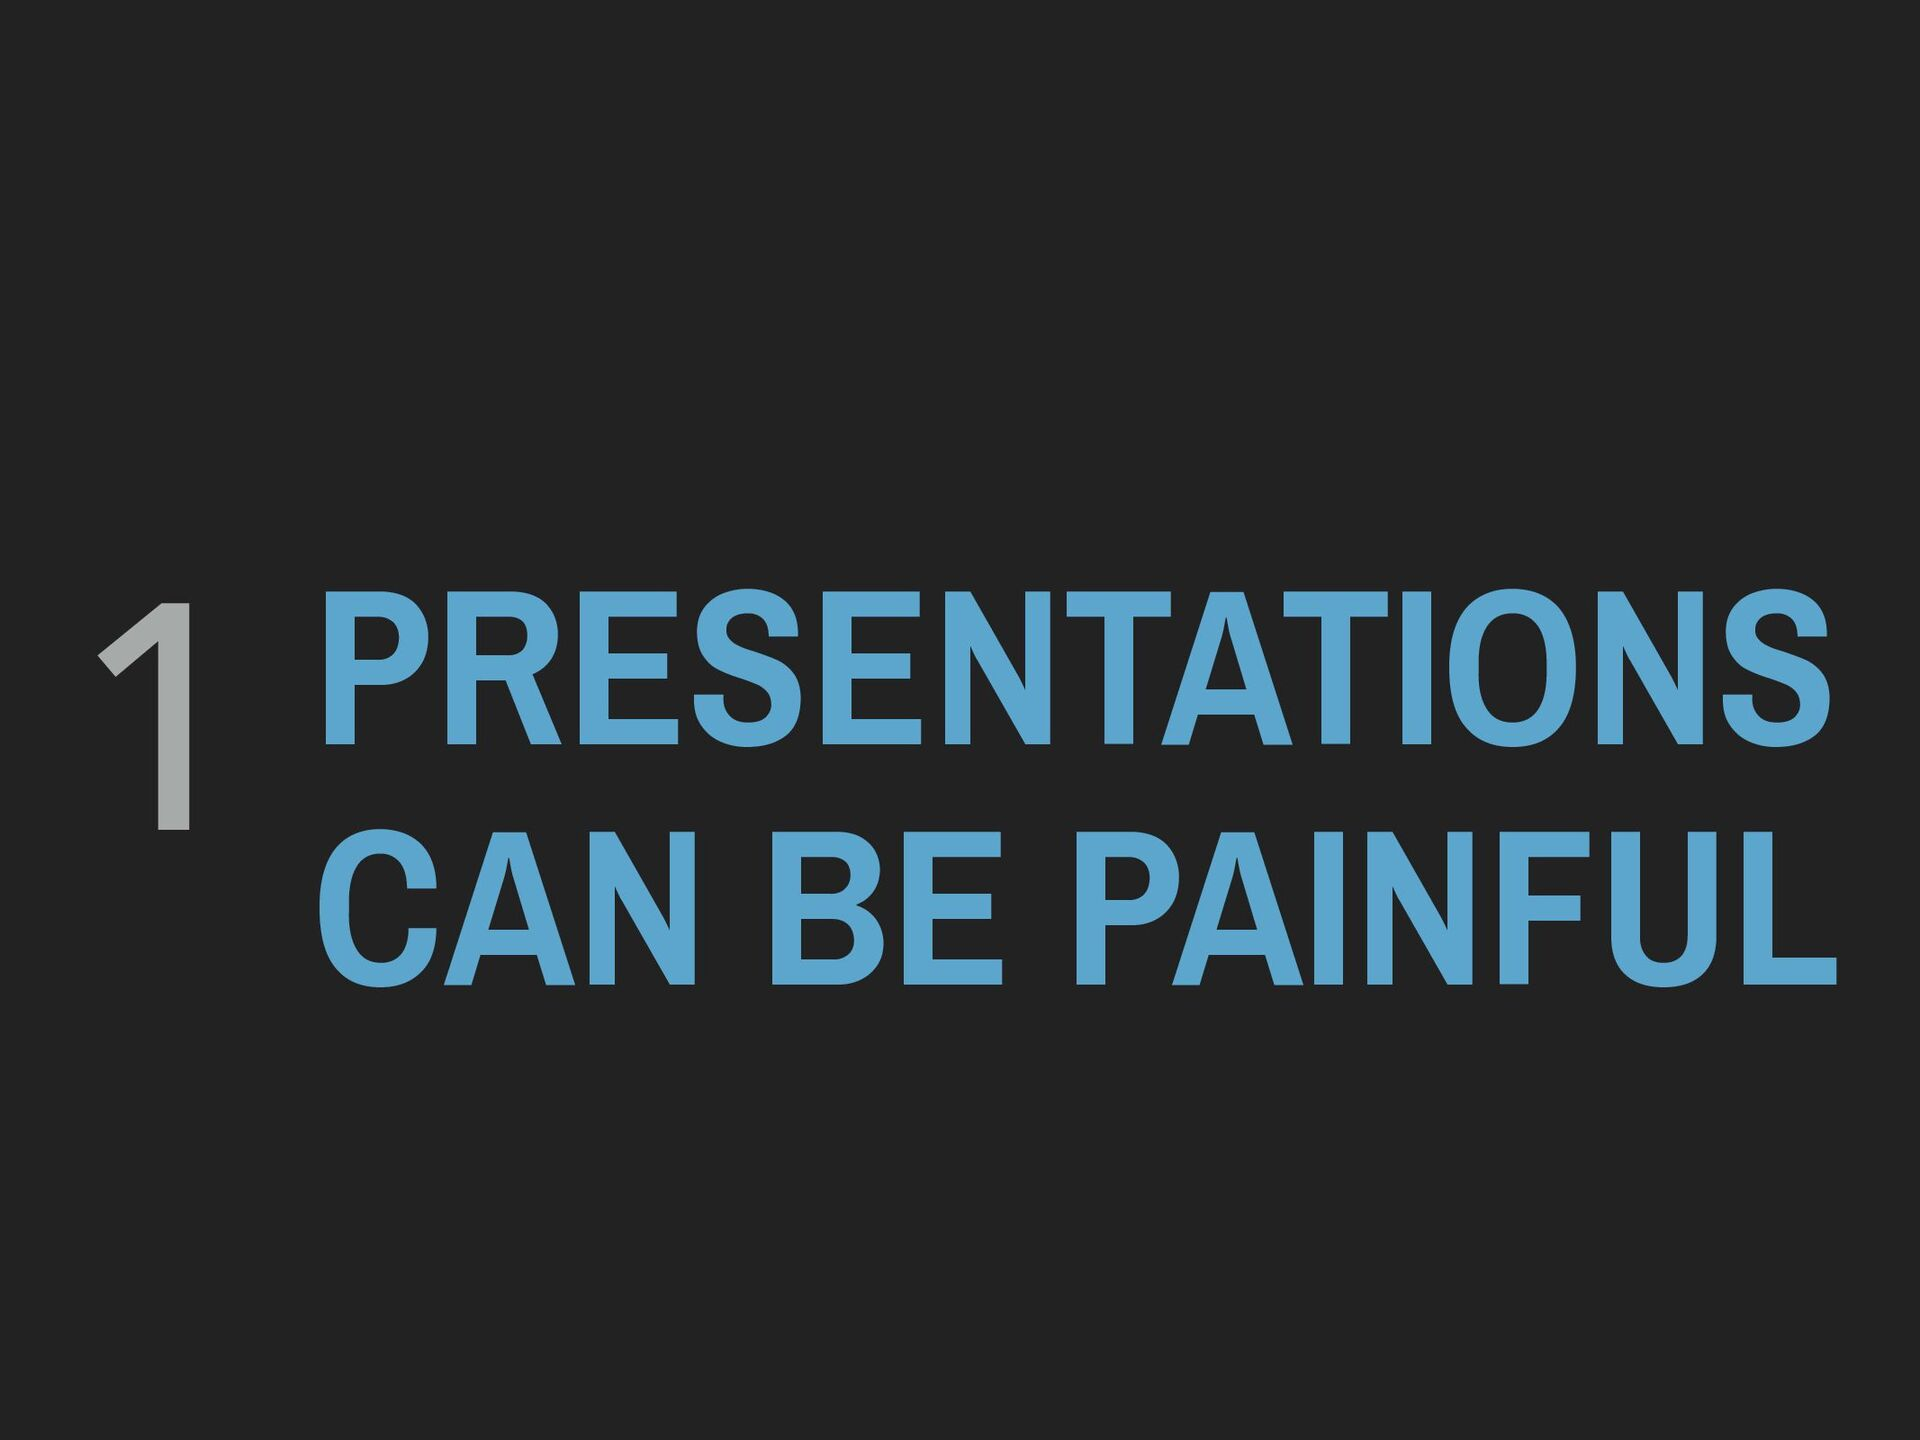 PRESENTATIONS CAN BE PAINFUL 1